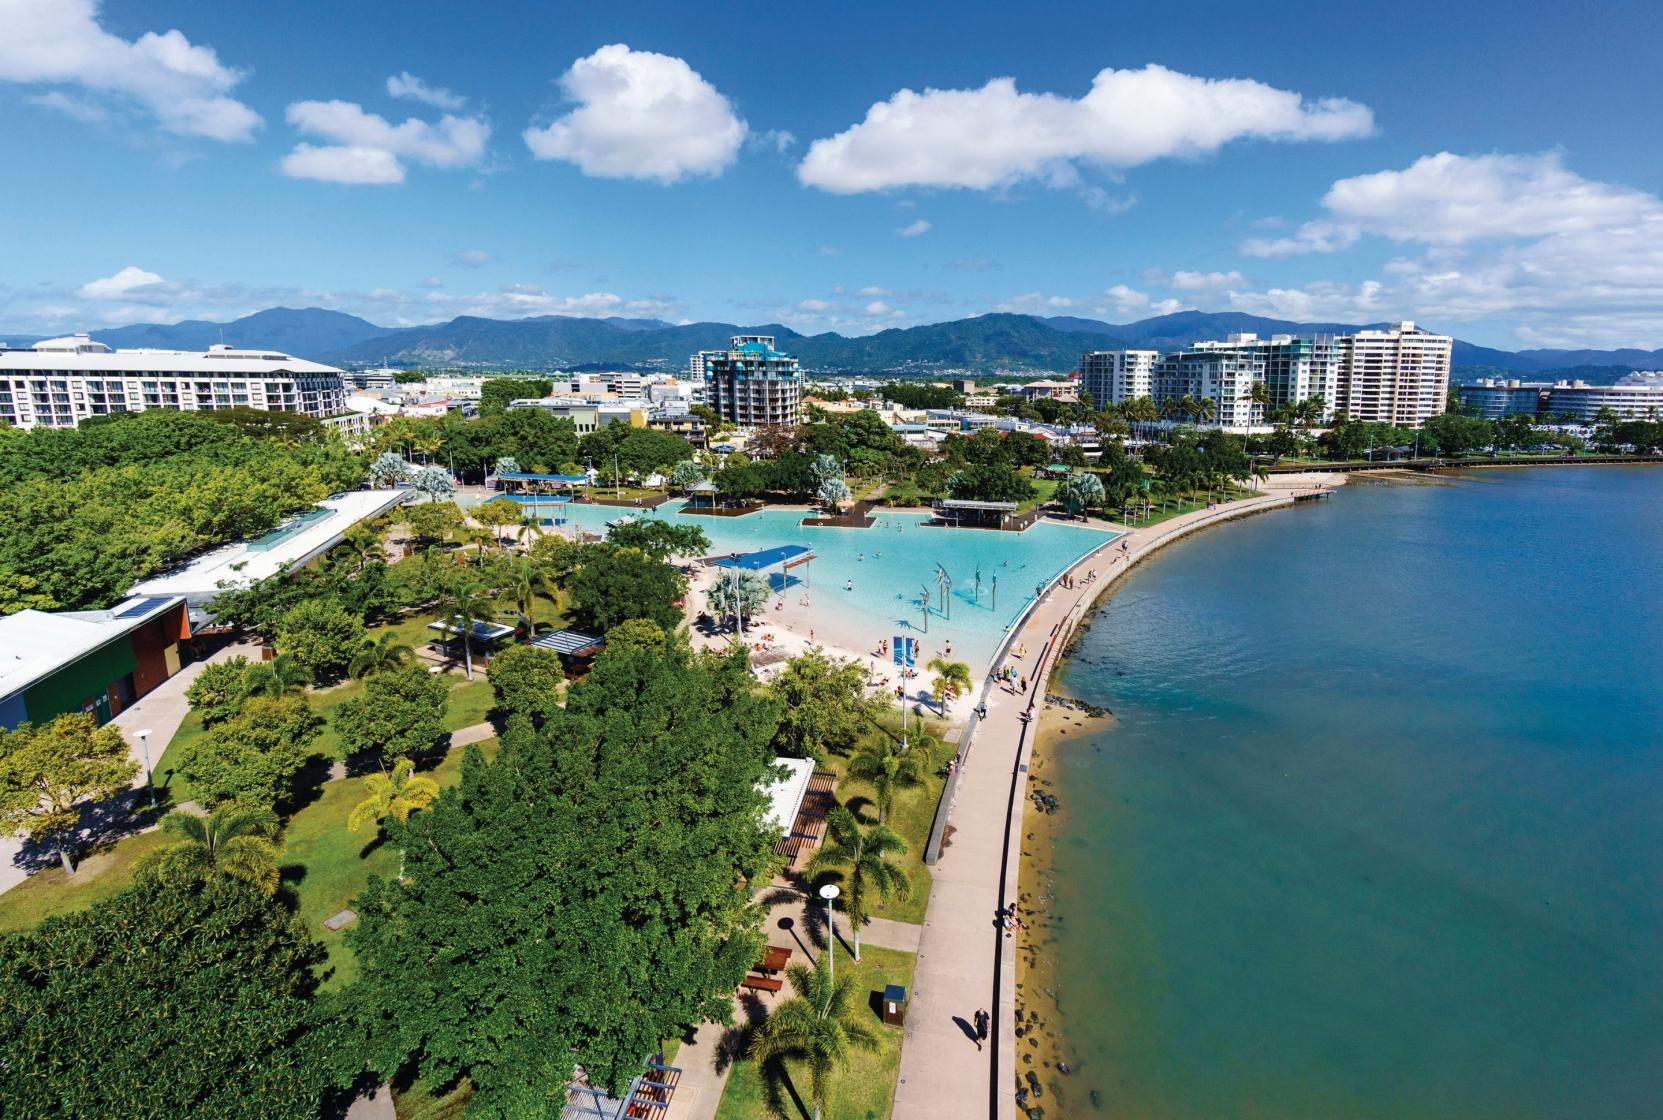 Top 4 Reasons Why You Should Visit Cairns